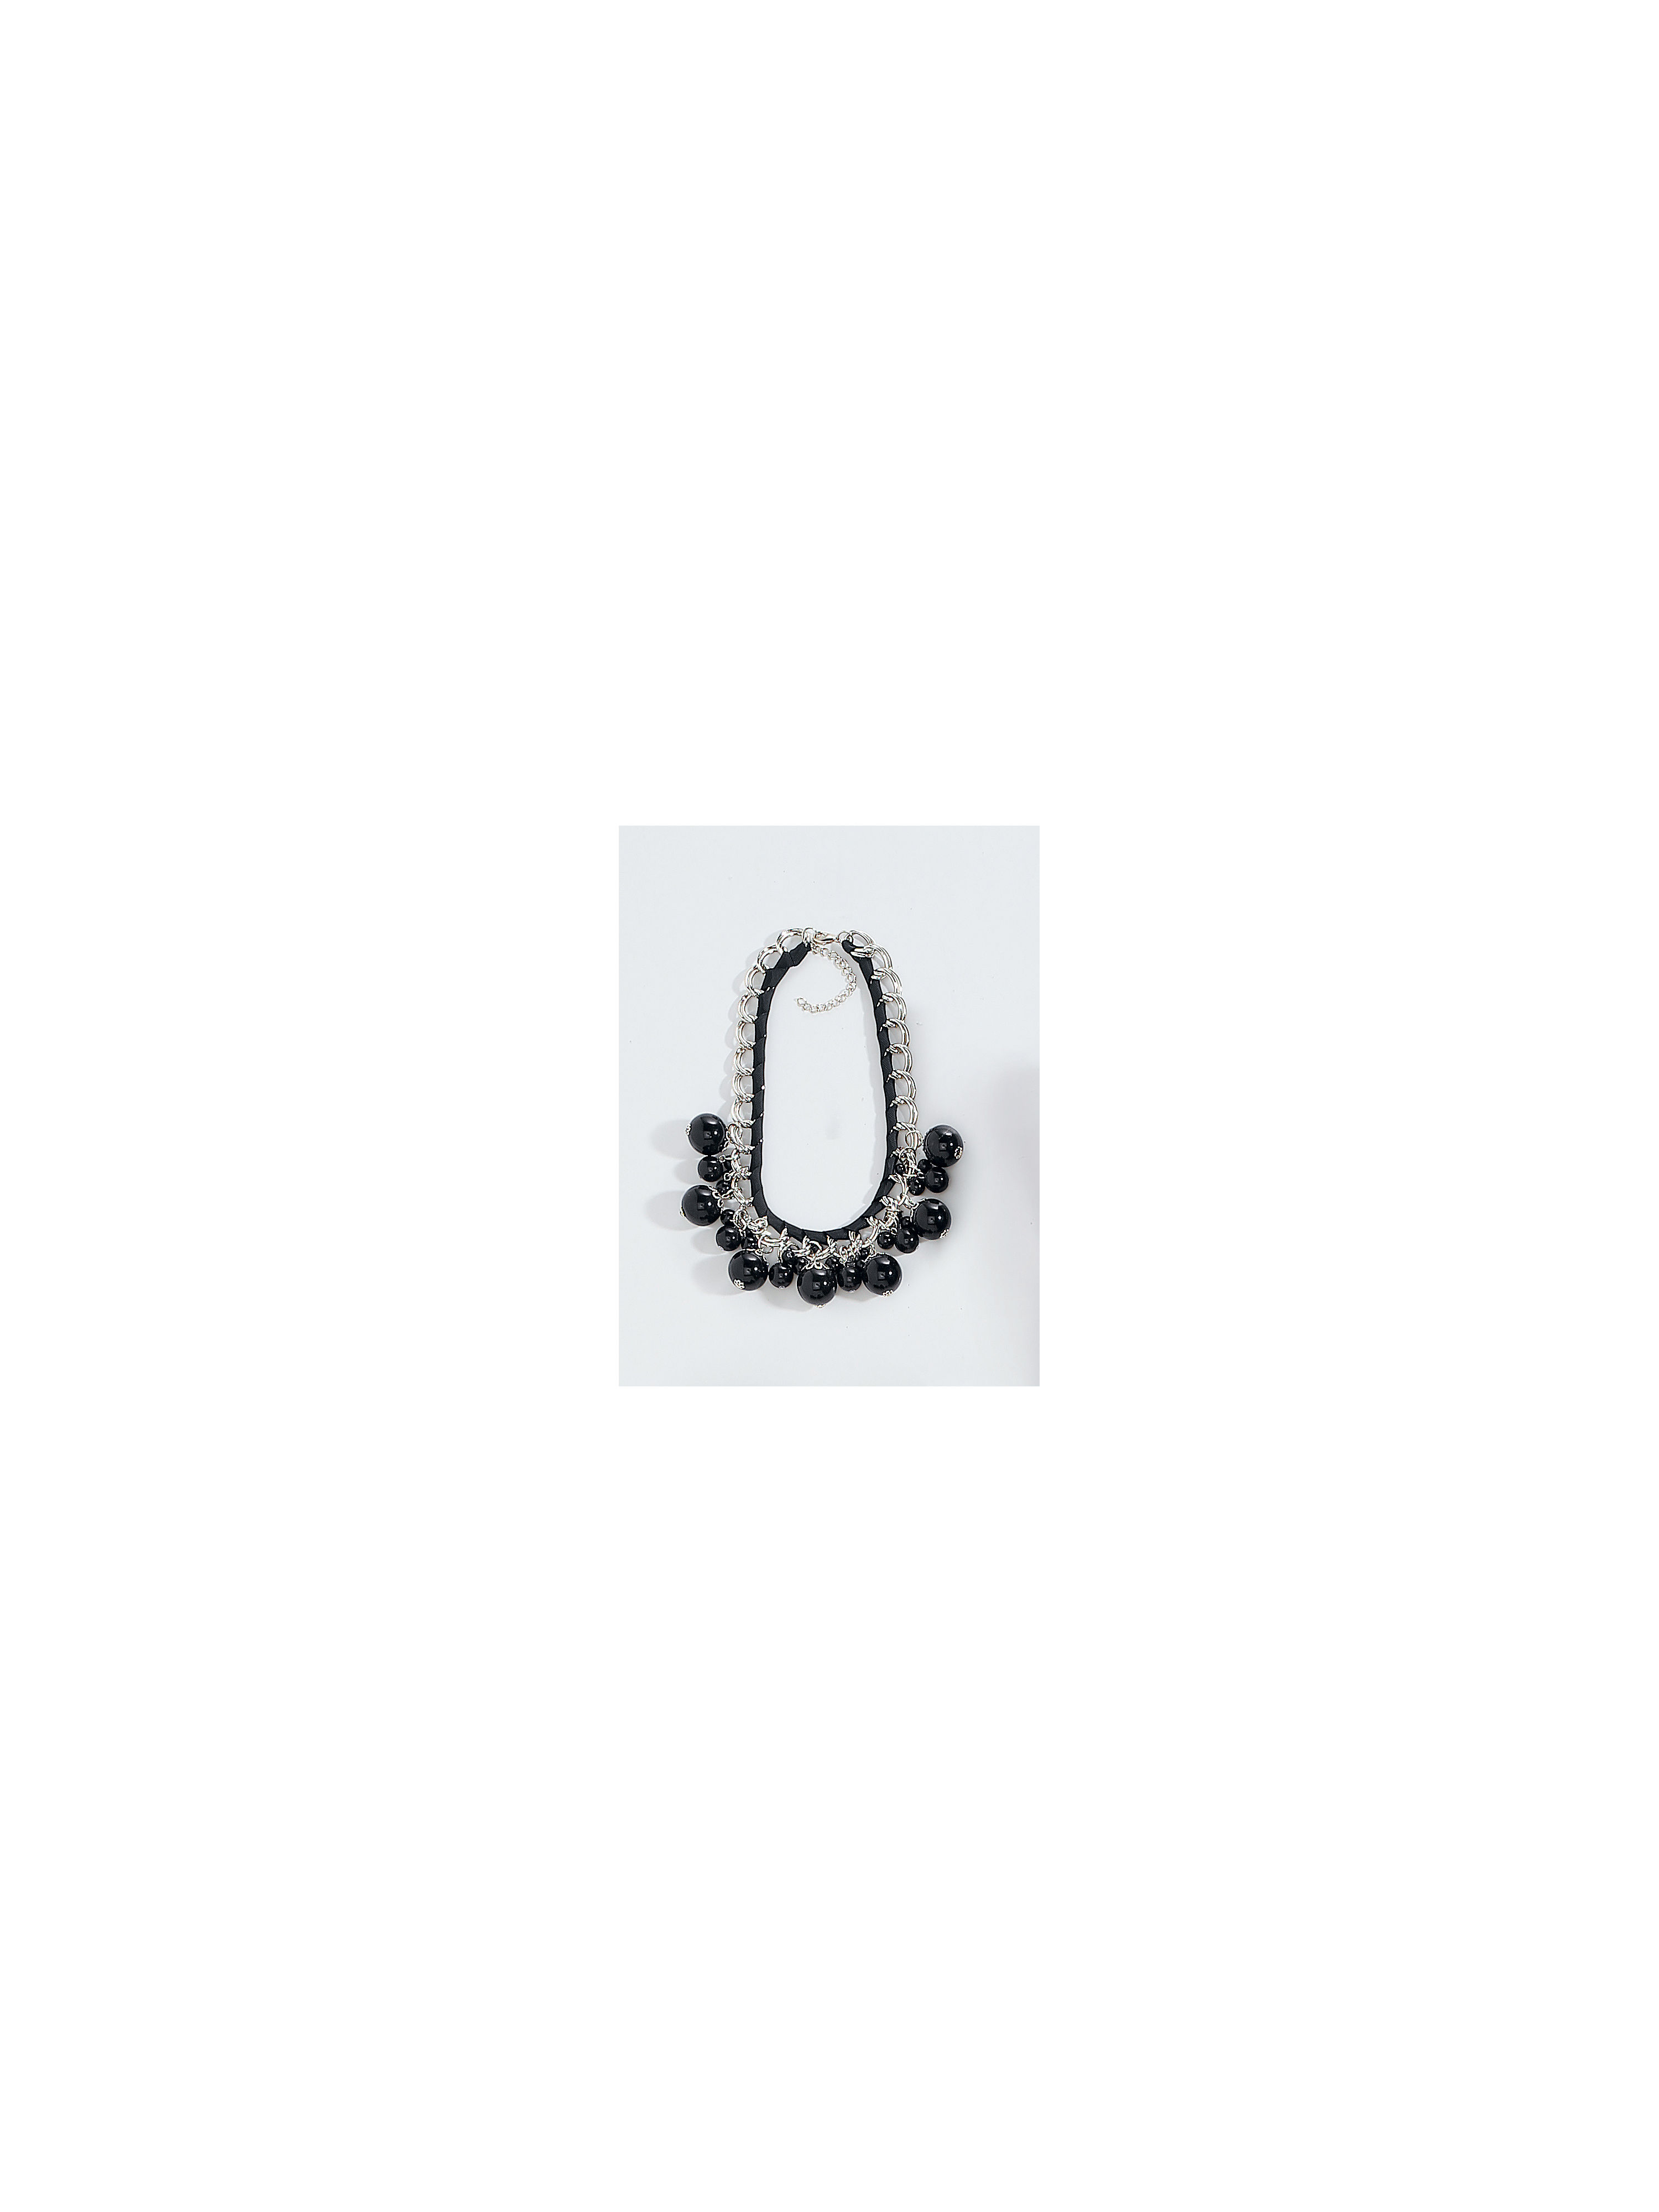 necklace-from-uta-raasch-black